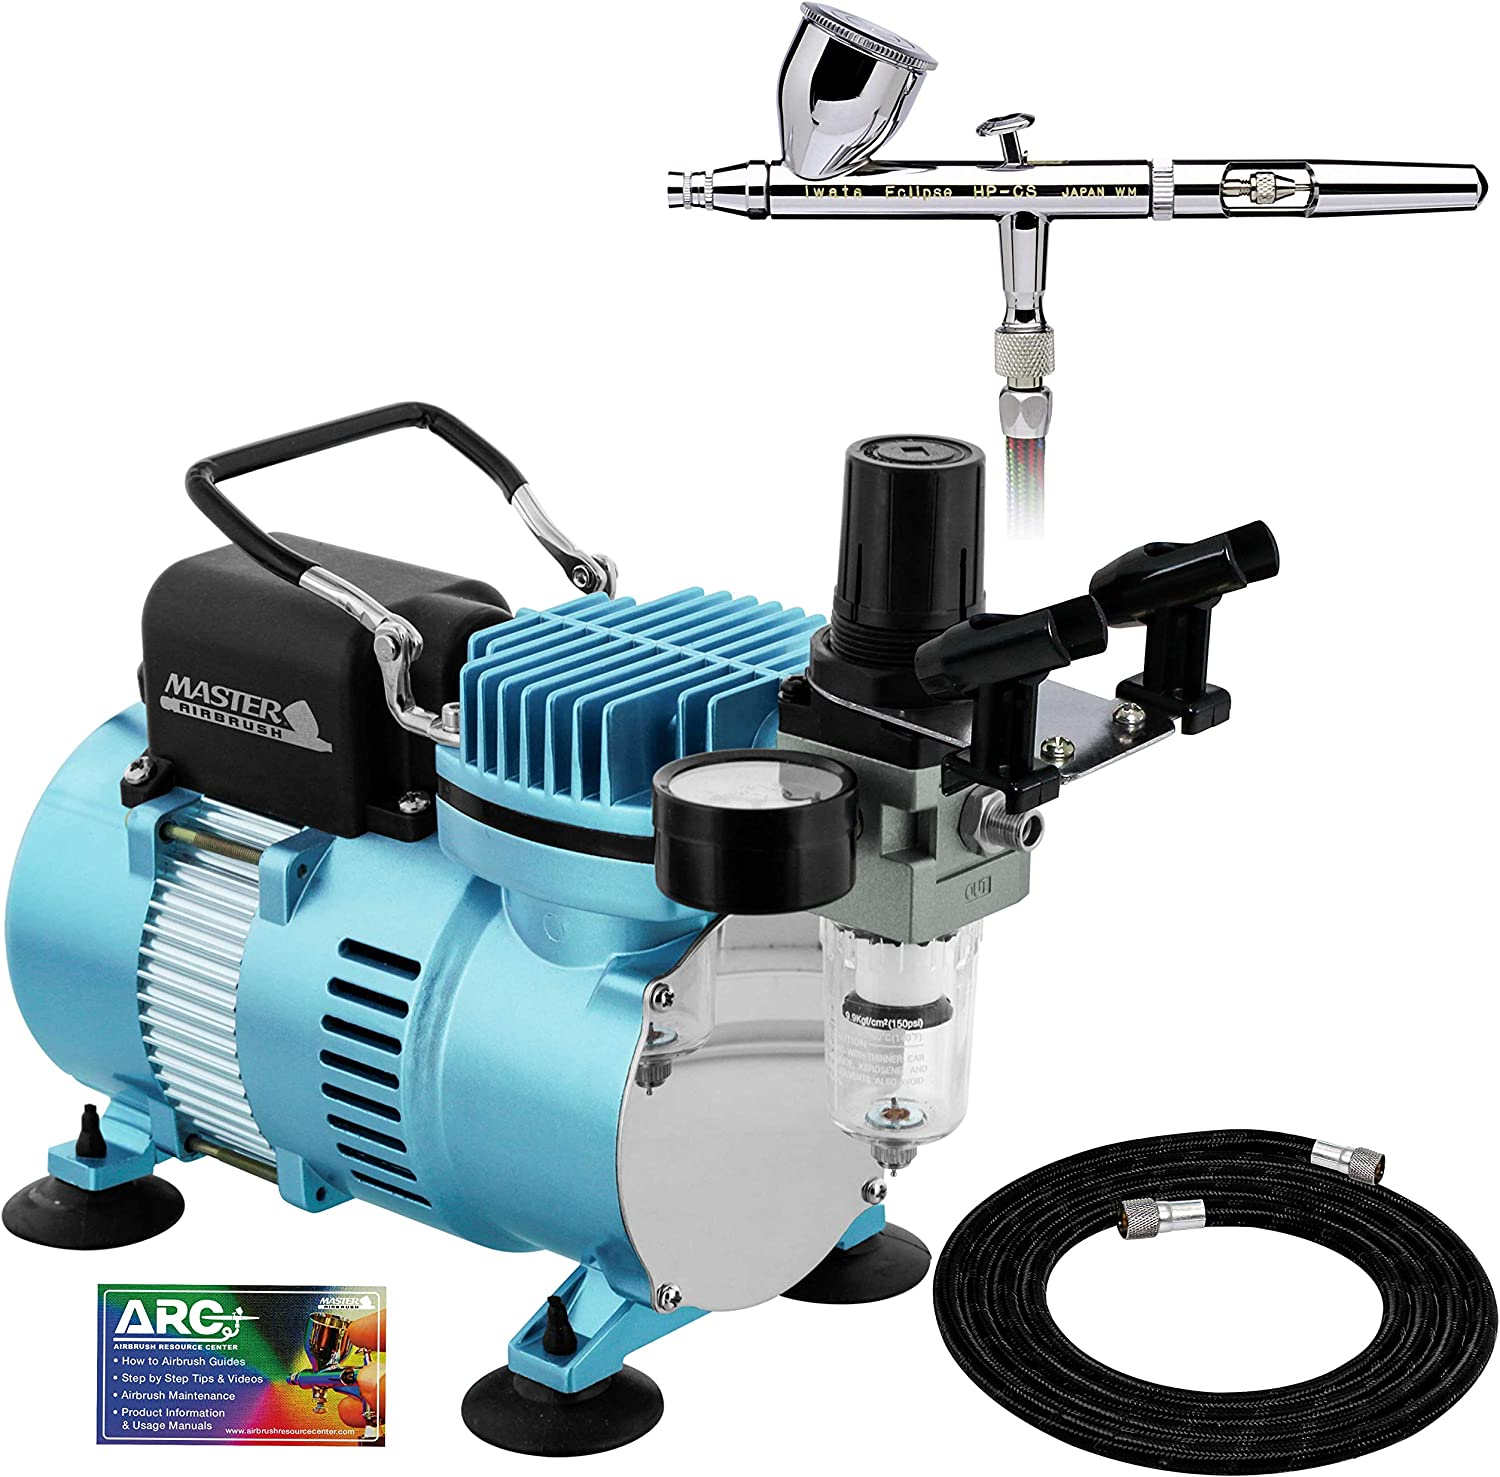 Iwata Eclipse HP CS Airbrush Set with a 1/5 hp Cool Runner II Dual Fan Air Compressor System Kit, Professional All-Purpose Dual-Action Gravity Feed Airbrush, 0.35mm tip, 6ft Hose, Holder, How-To Guide